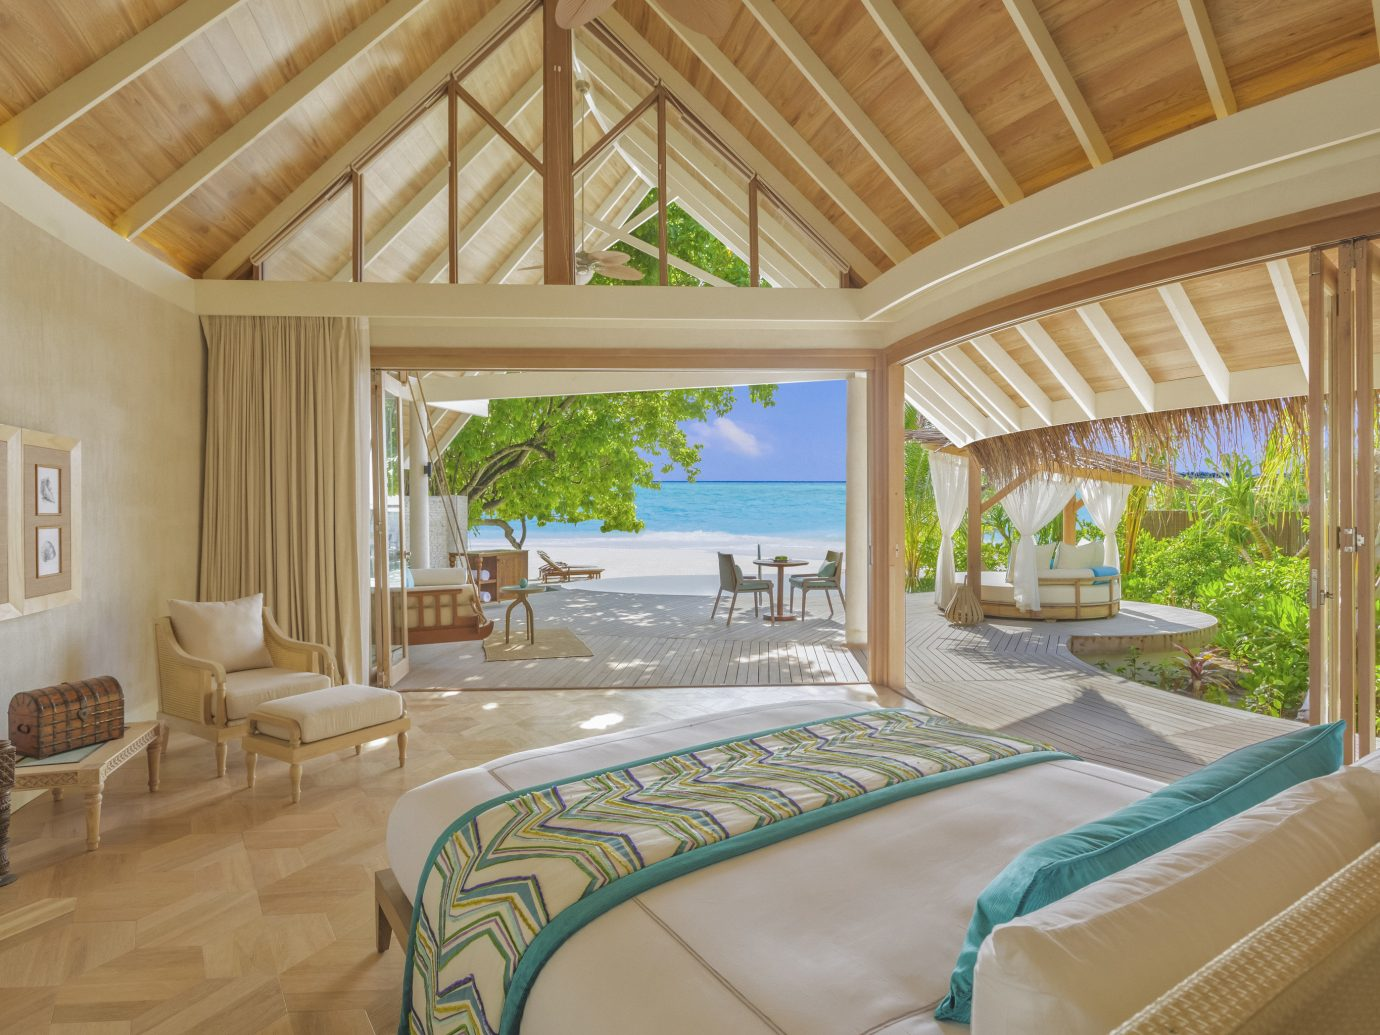 Bedroom at Milaidhoo Island Maldives